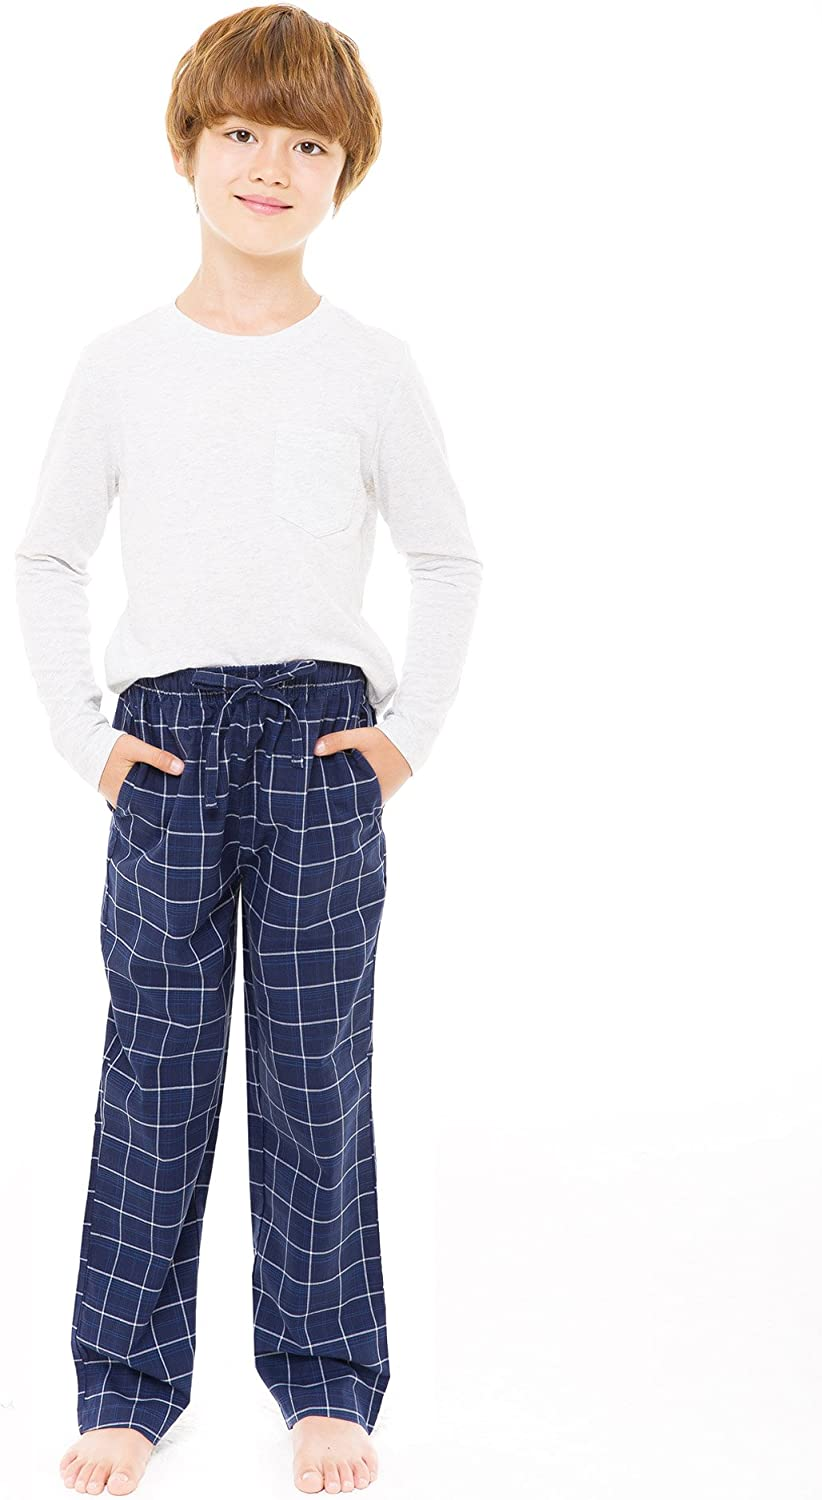 TINFL 6-12 Years 100/% Cotton Plaid Check Soft Lightweight Lounge Pants with Pocket